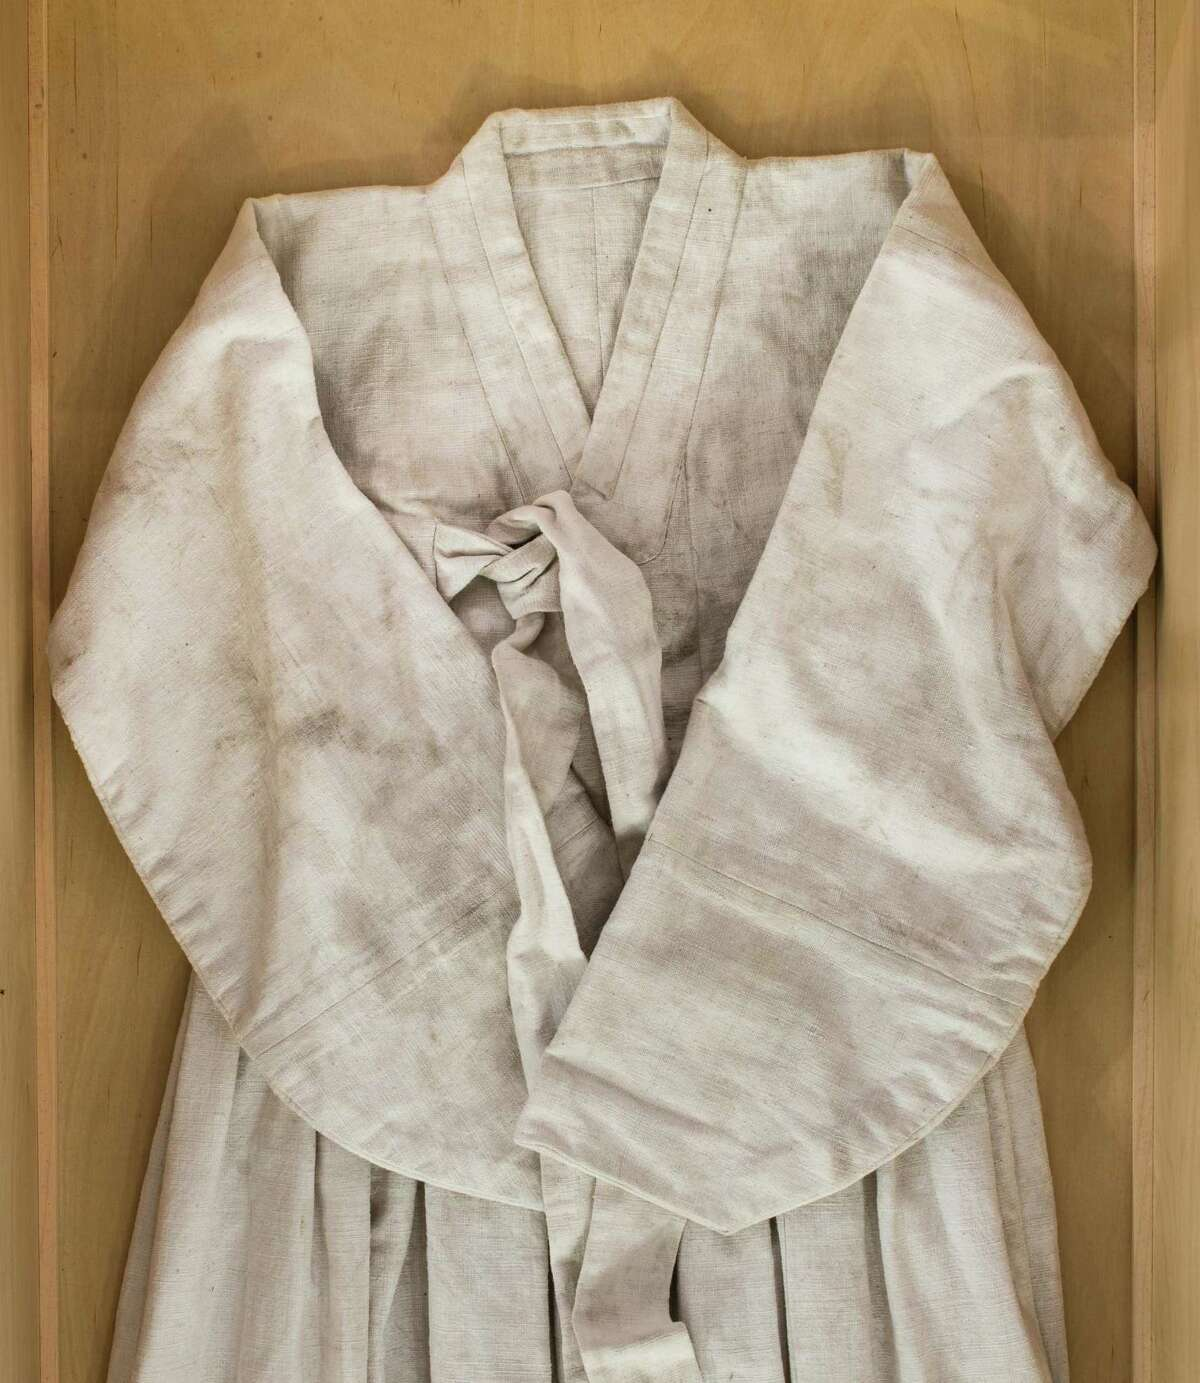 """""""You and Me"""" is a handmade Korean dress that is part of Jungeun Lee's installation about a comfort woman in WWII."""